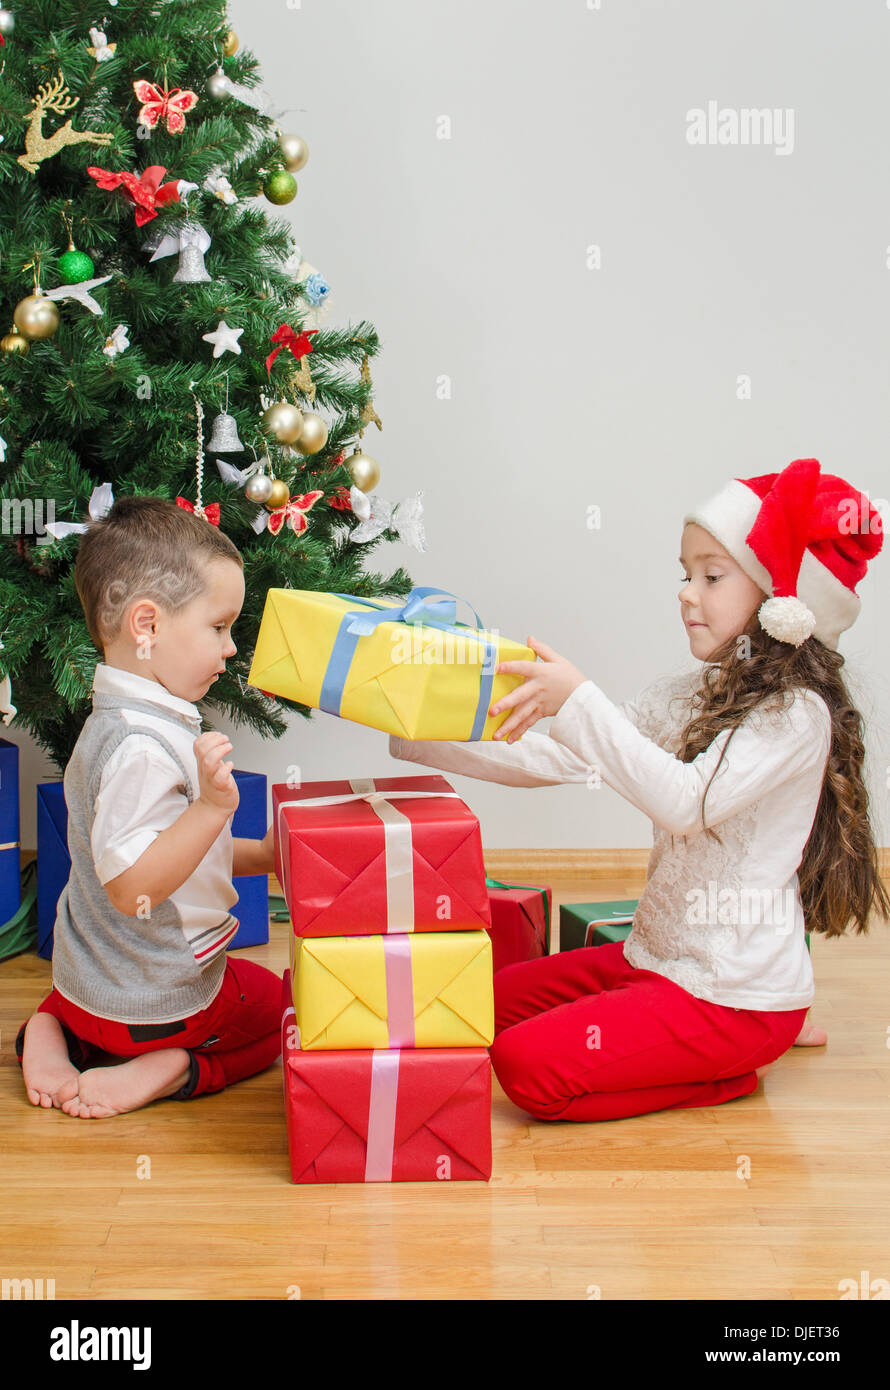 Christmas Gifts For Brother.Brother And Sister Packing Christmas Gifts Stock Photo